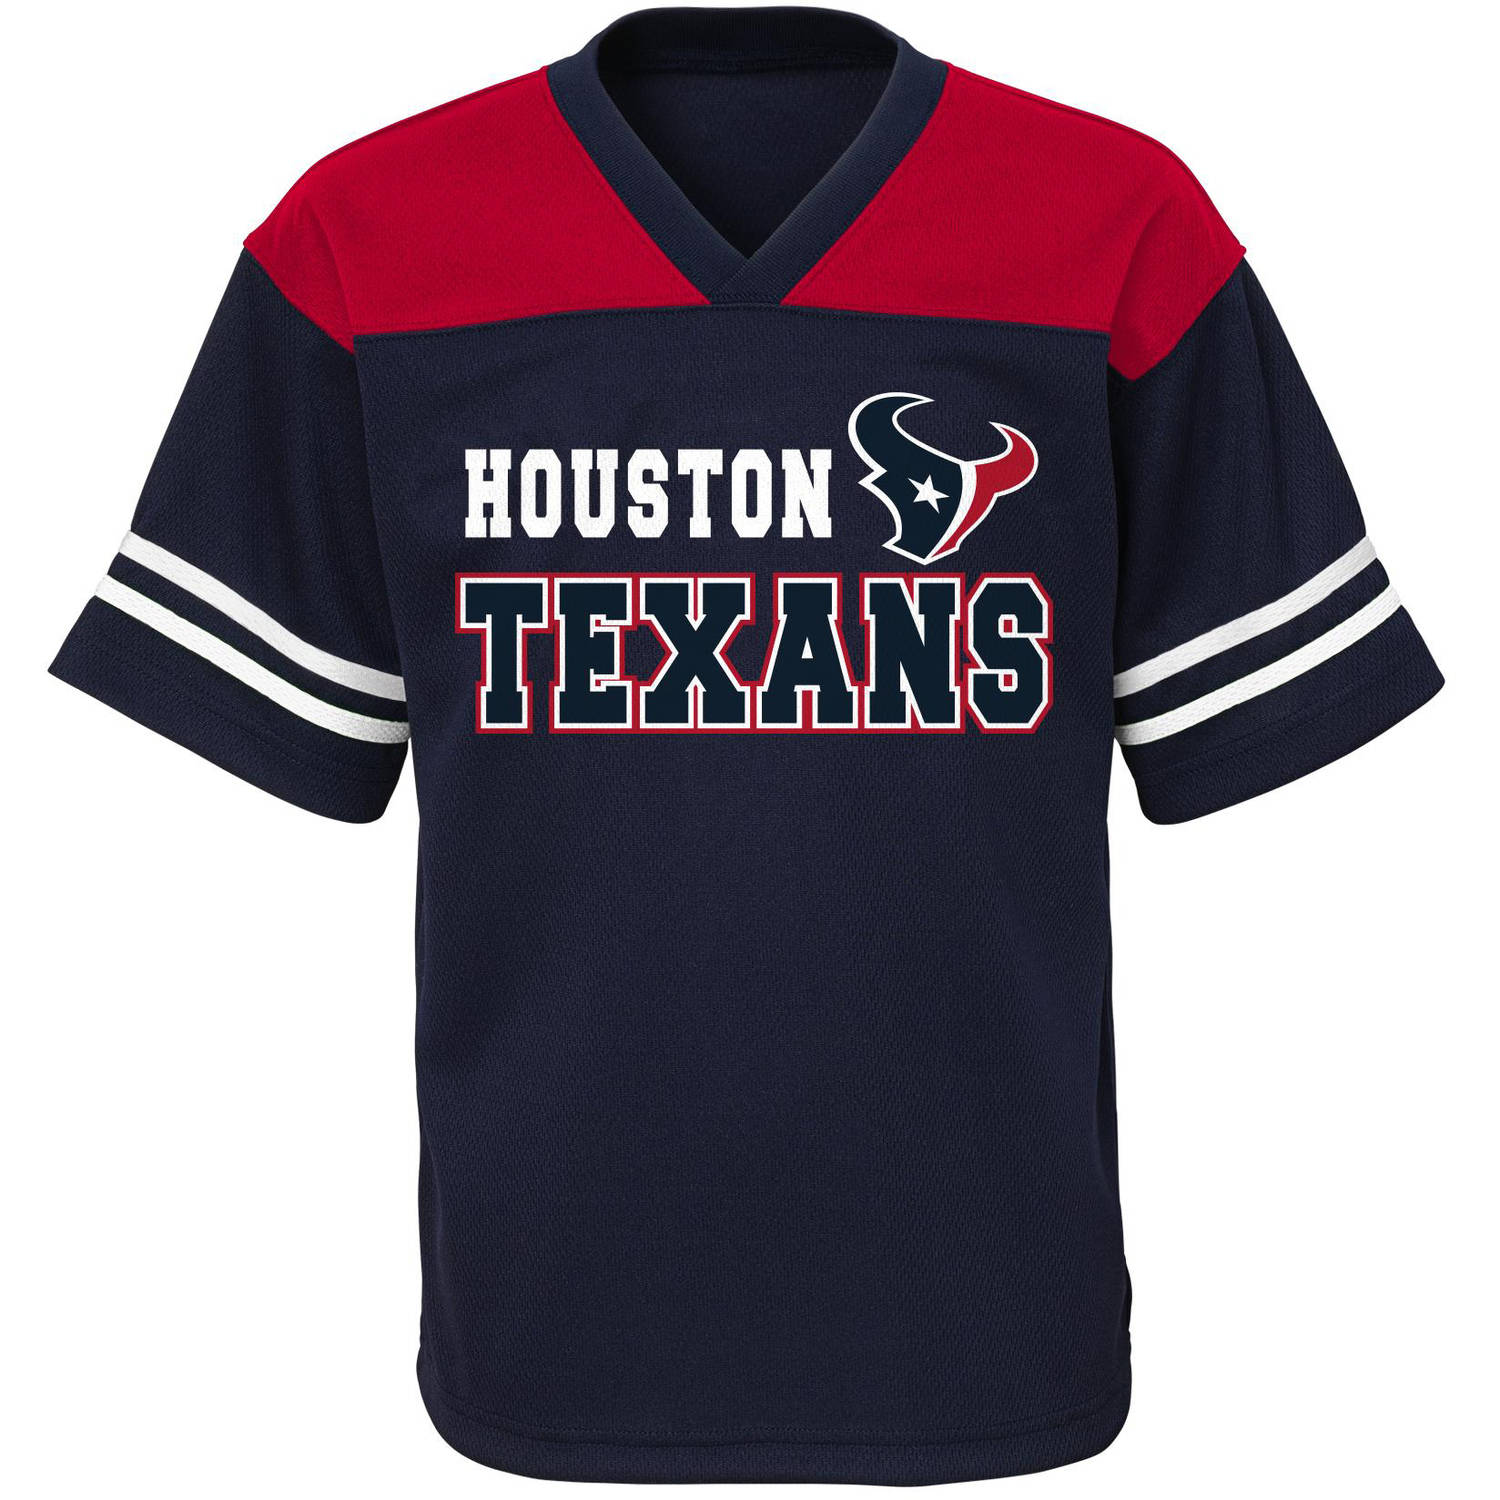 NFL Boys' Houston Texans Short Sleeve Mesh Team Top